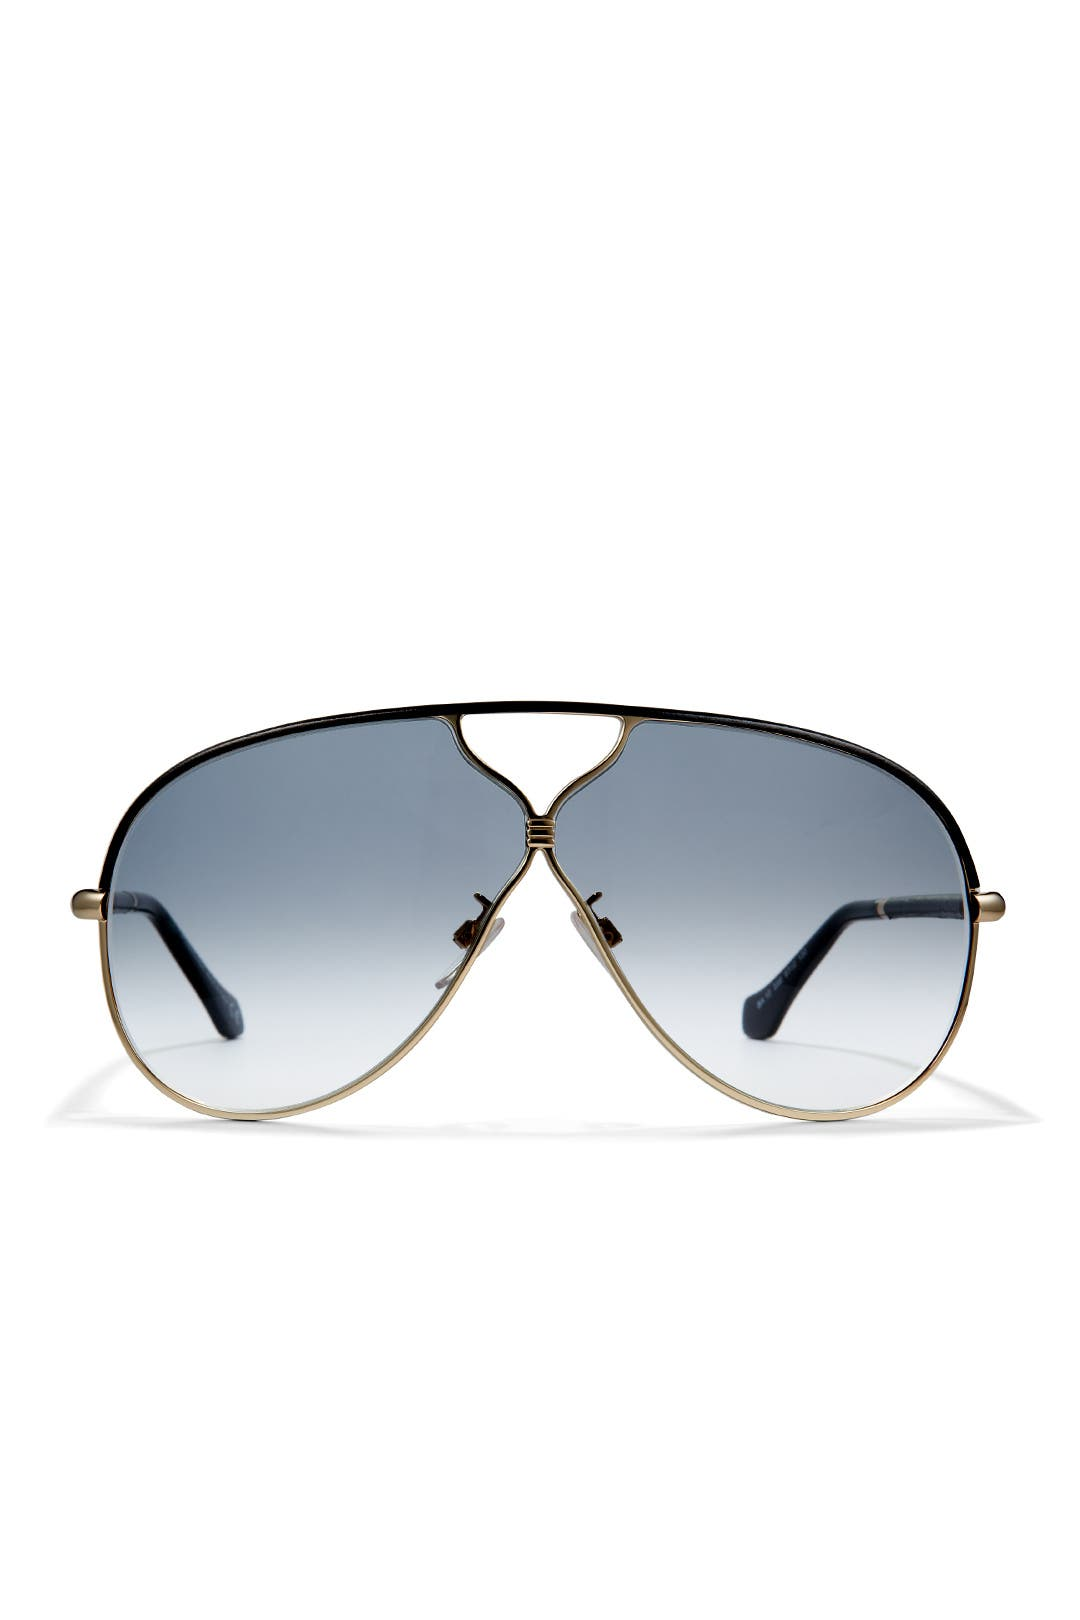 Beacon Sunglasses by Balenciaga Accessories